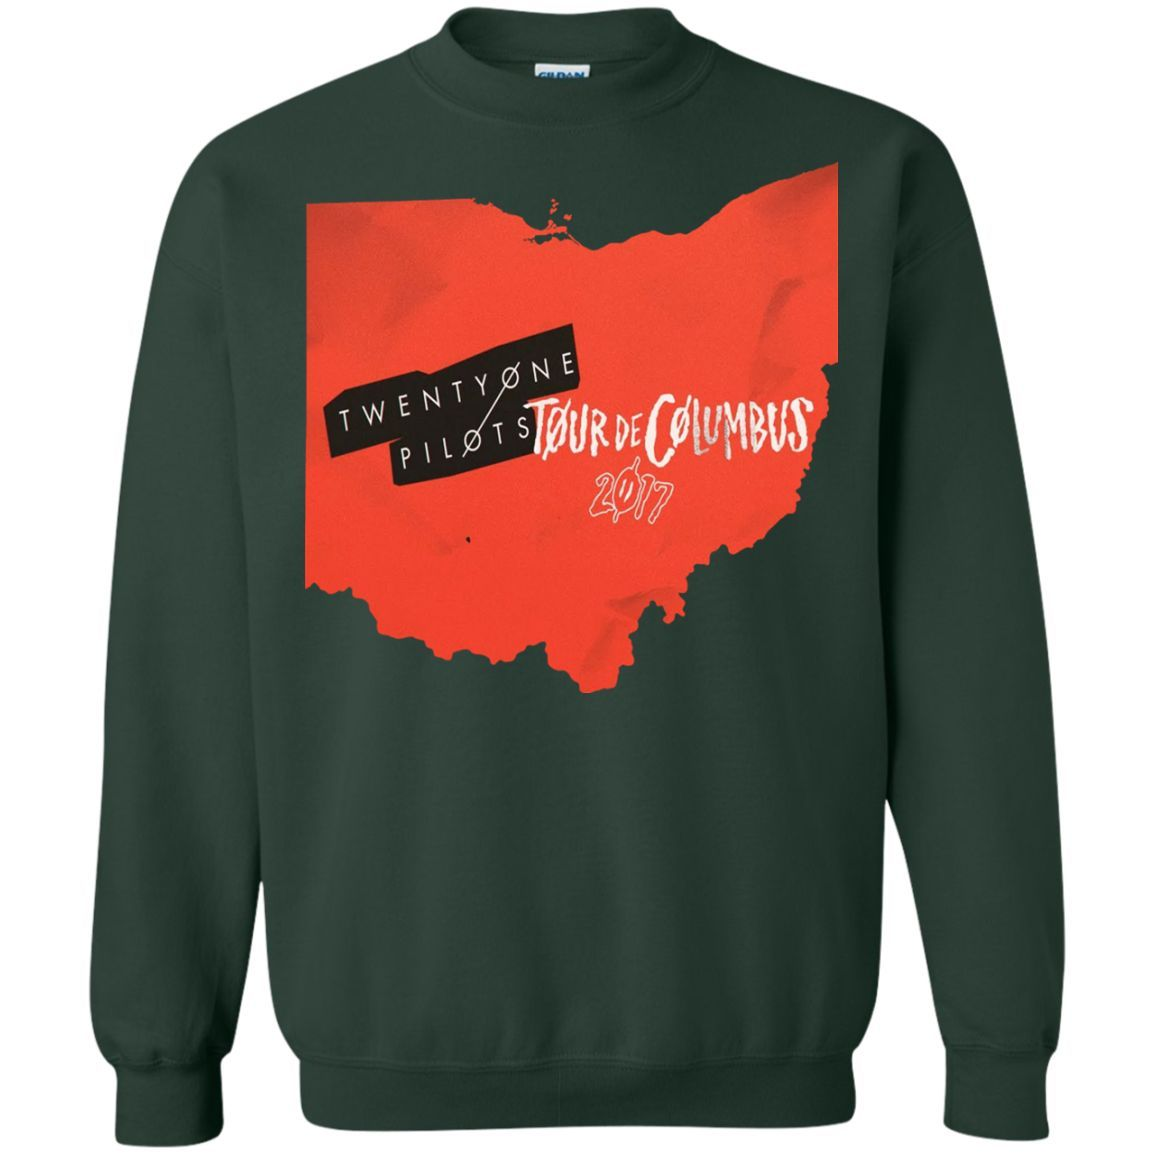 tour de columbus twenty one pilots Printed Crewneck Pullover Sweatshirt 8 oz